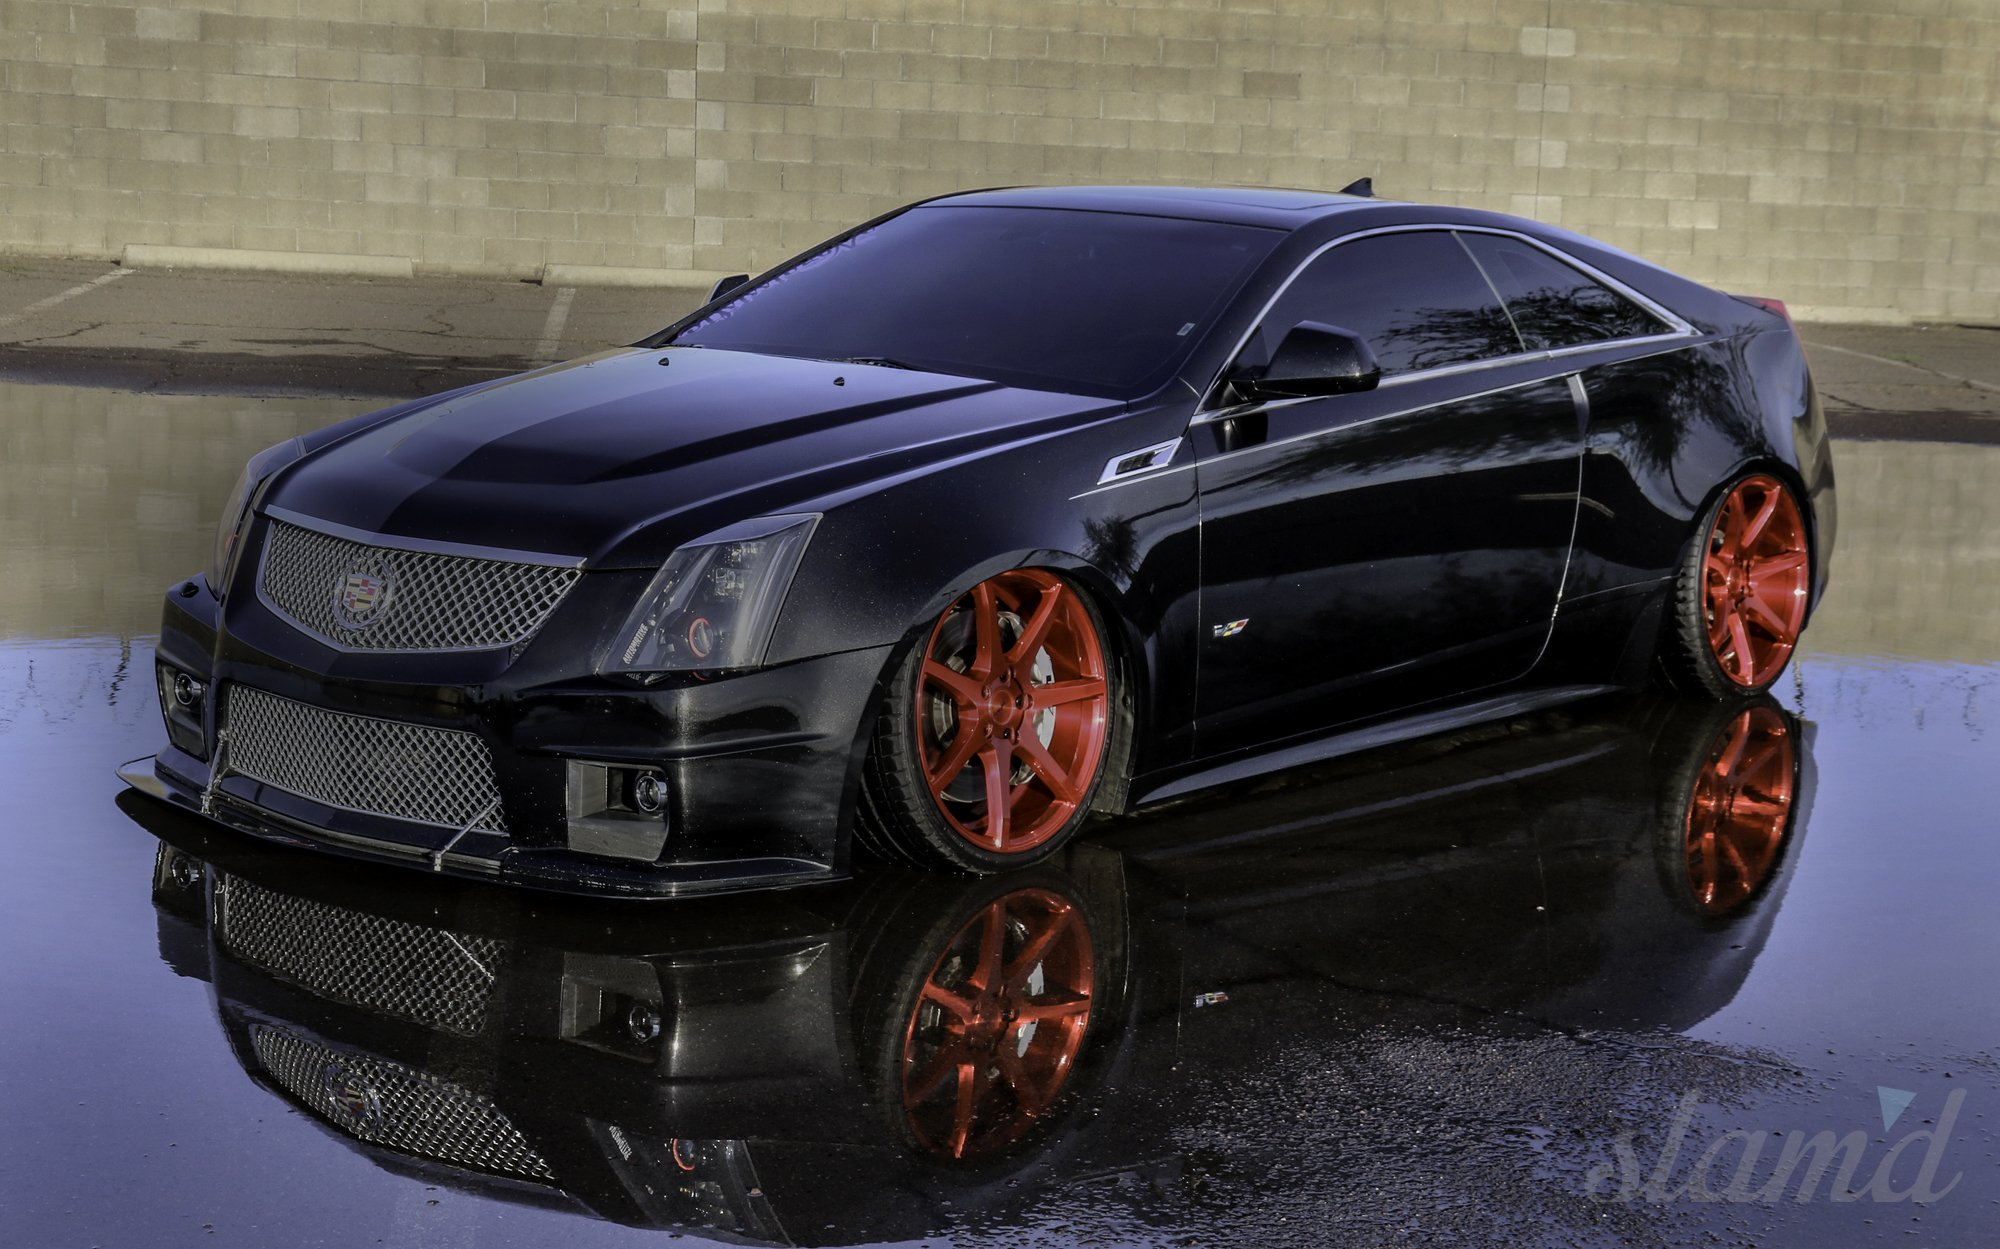 2012 Cadillac Cts V Coupe Tuning Custom Lowrider Wallpaper